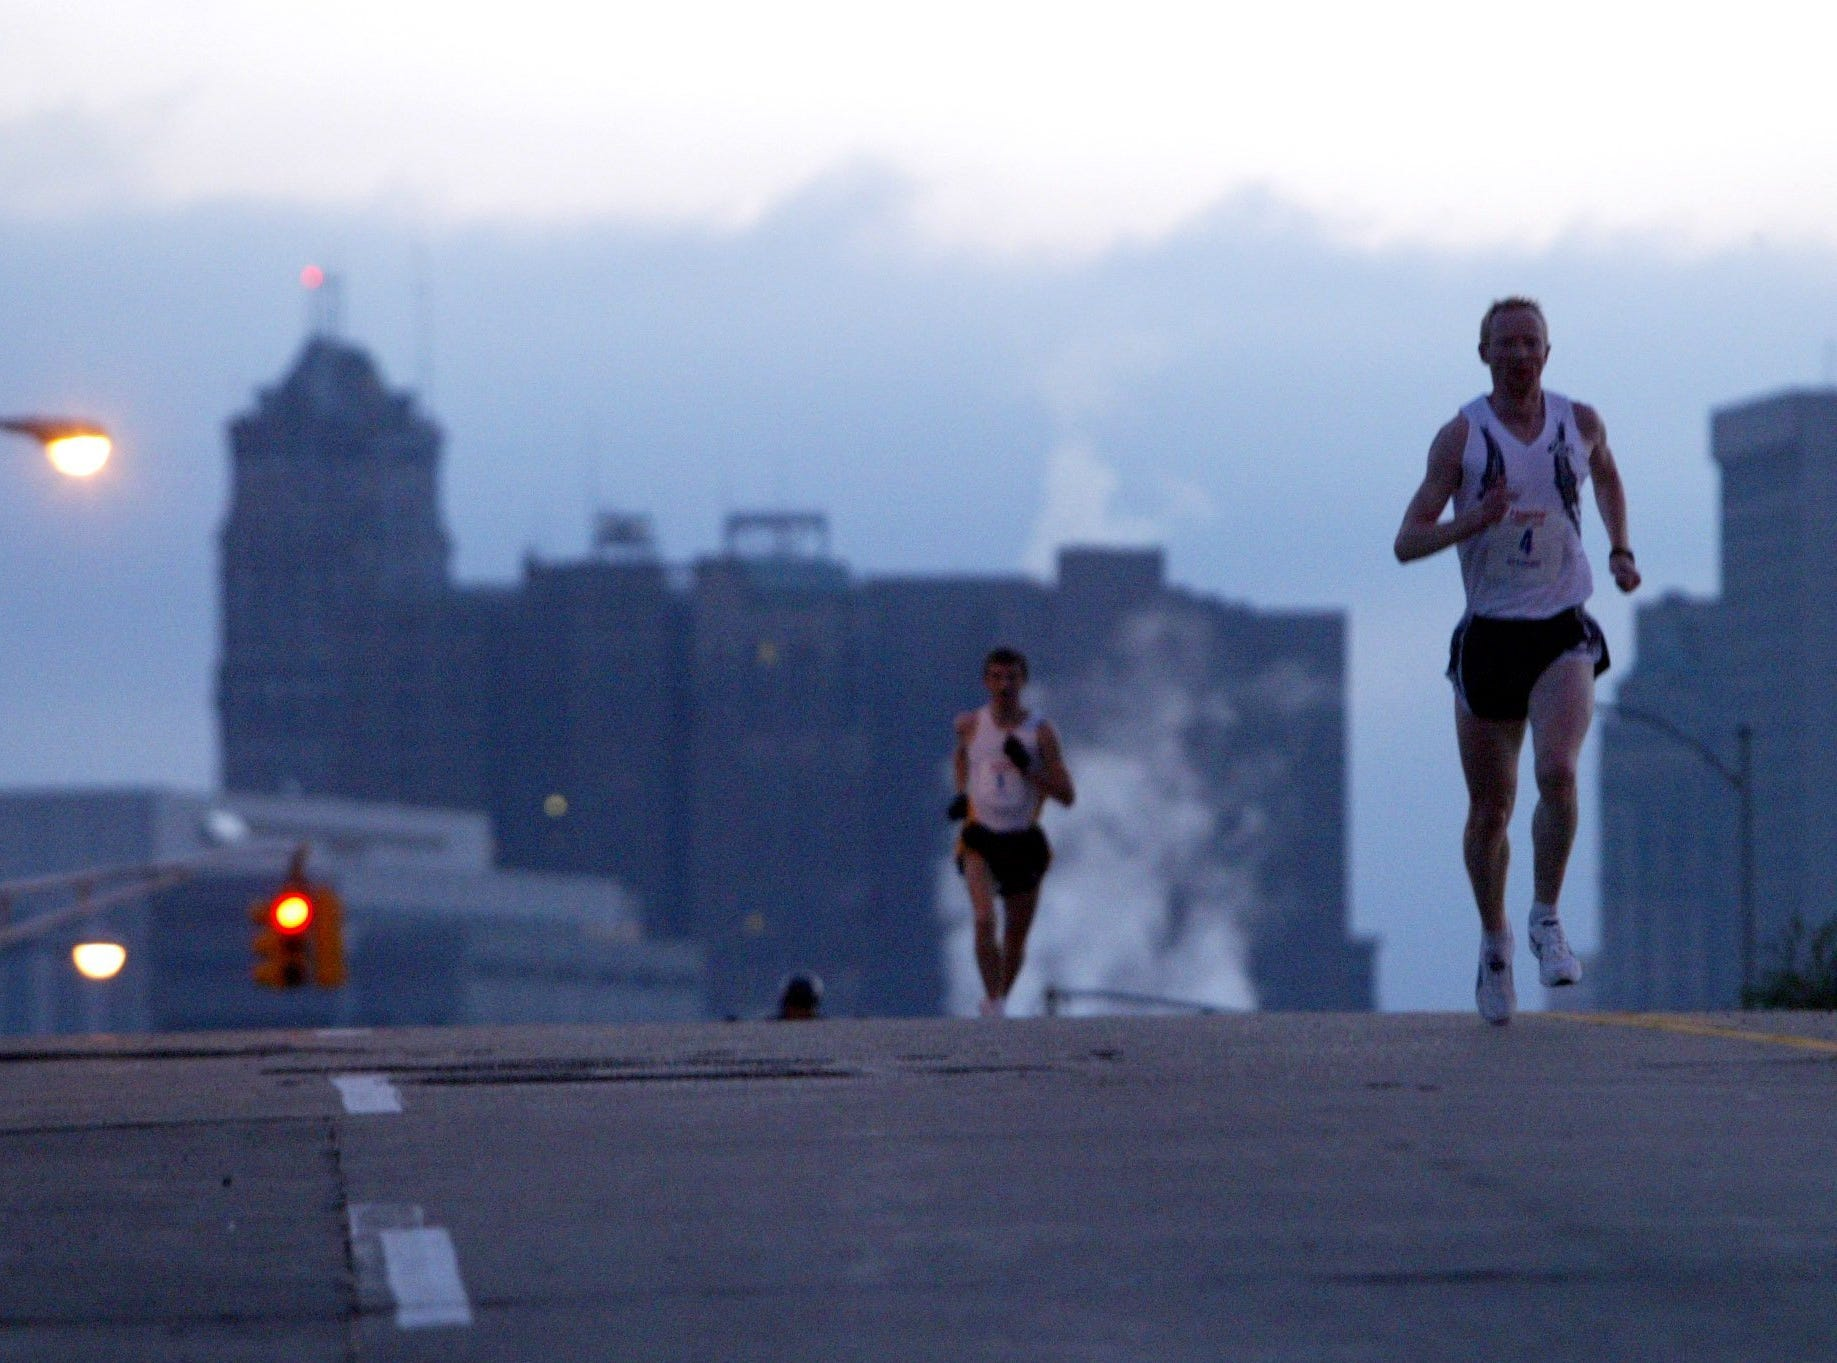 Early in the race, Andrei Gordeev of Minsk, Belarus, front, pulled ahead of Alexey Veselov of St. Petersburg Russia, and commanded a significant lead throughout and ultimately won the 28th annual Detroit Free Press Marathon, Sunday, Oct. 23, 2005.